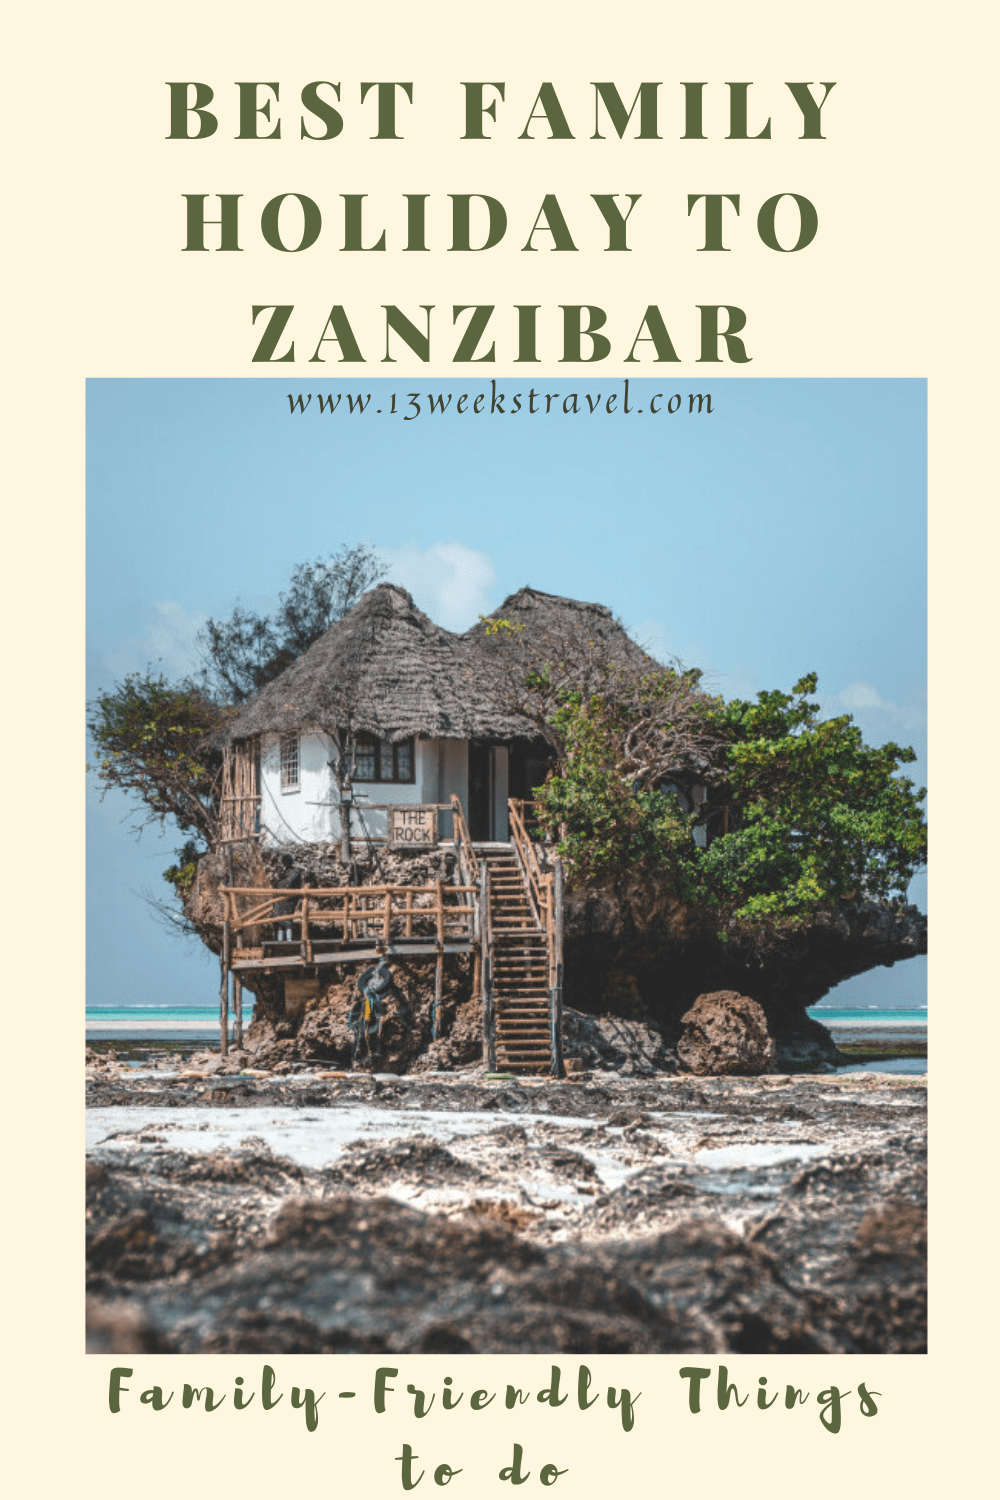 Best Family Holiday to Zanzibar